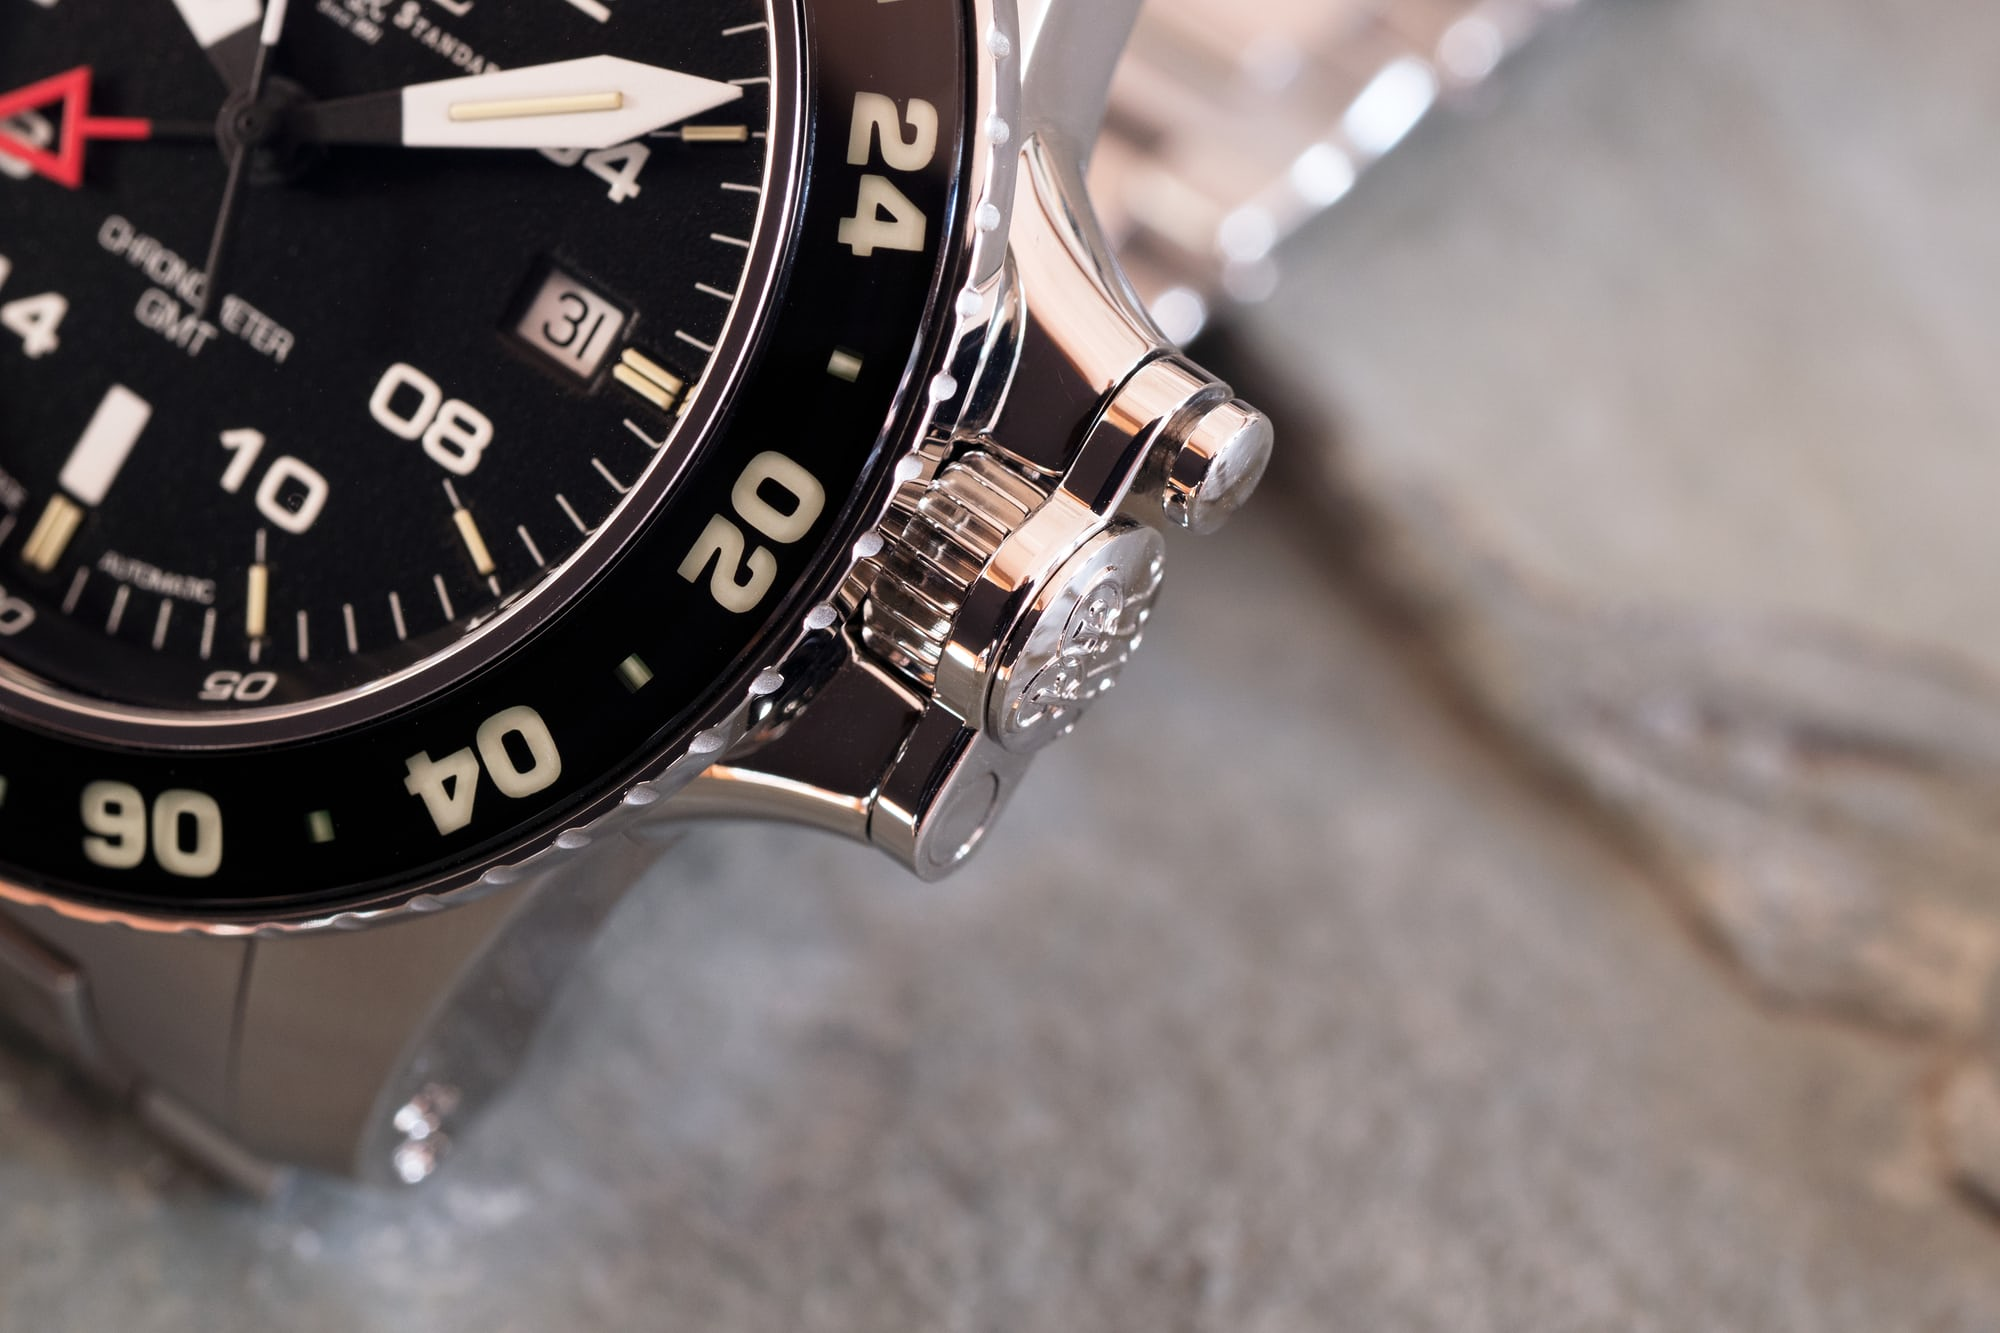 Ball Engineer Hydrocarbon AeroGMT II crown guard closed position